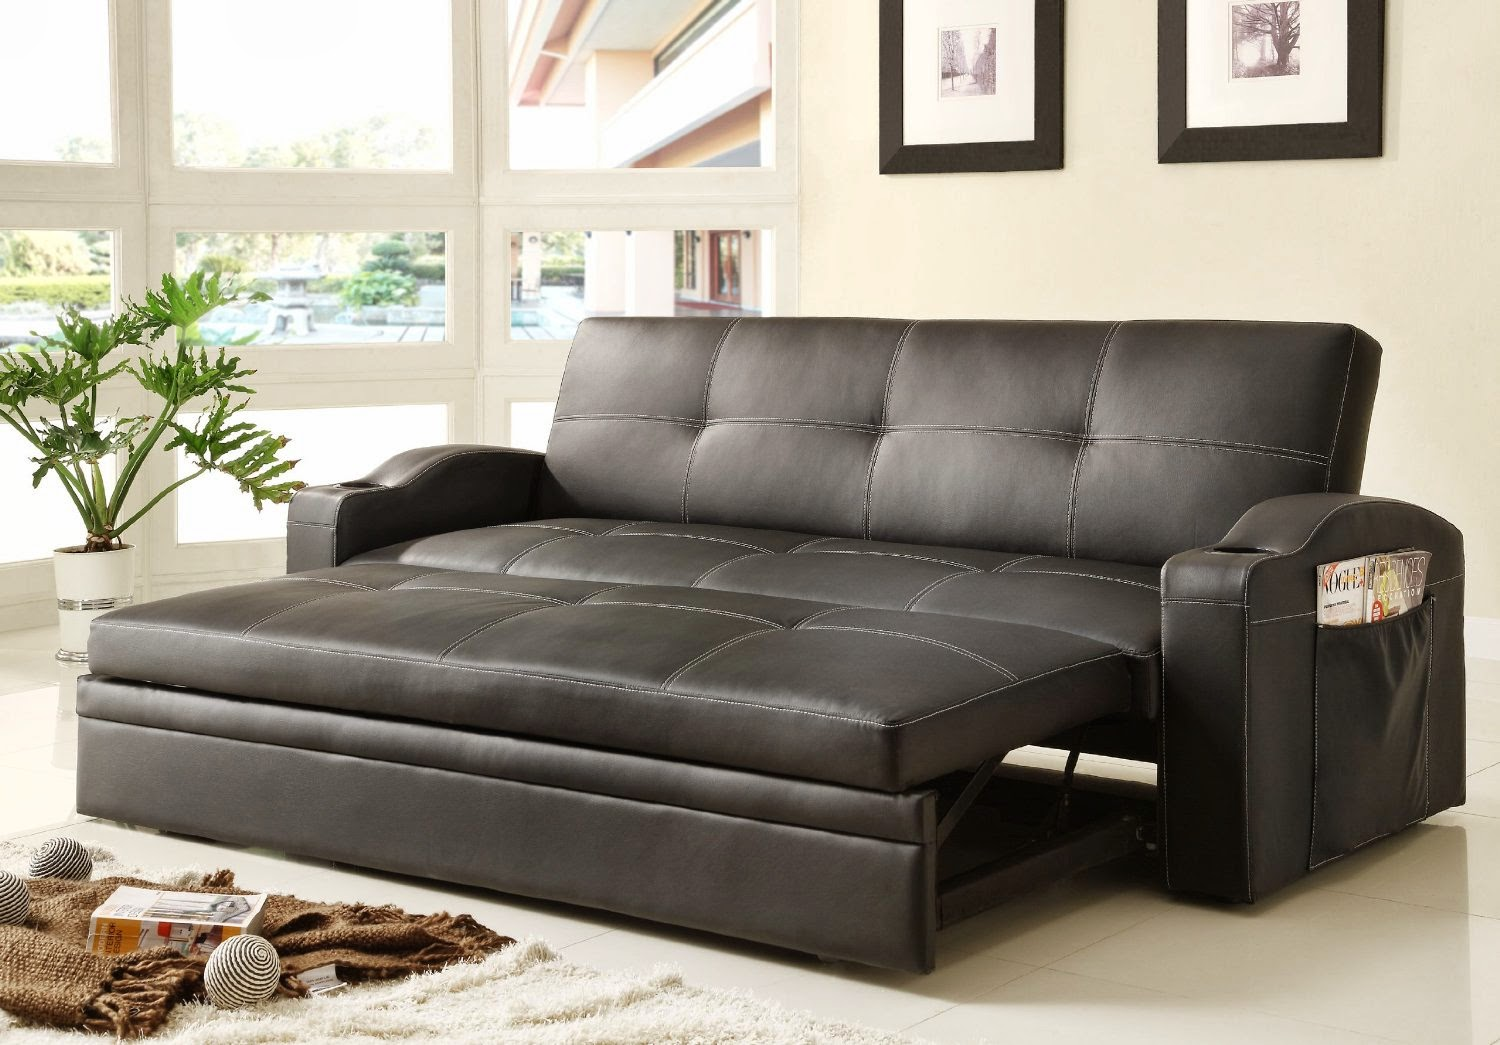 Best Homelegance 4803blk Sofa Bed Review Best Homelegance 4803blk Convertible Adjustable Sofa